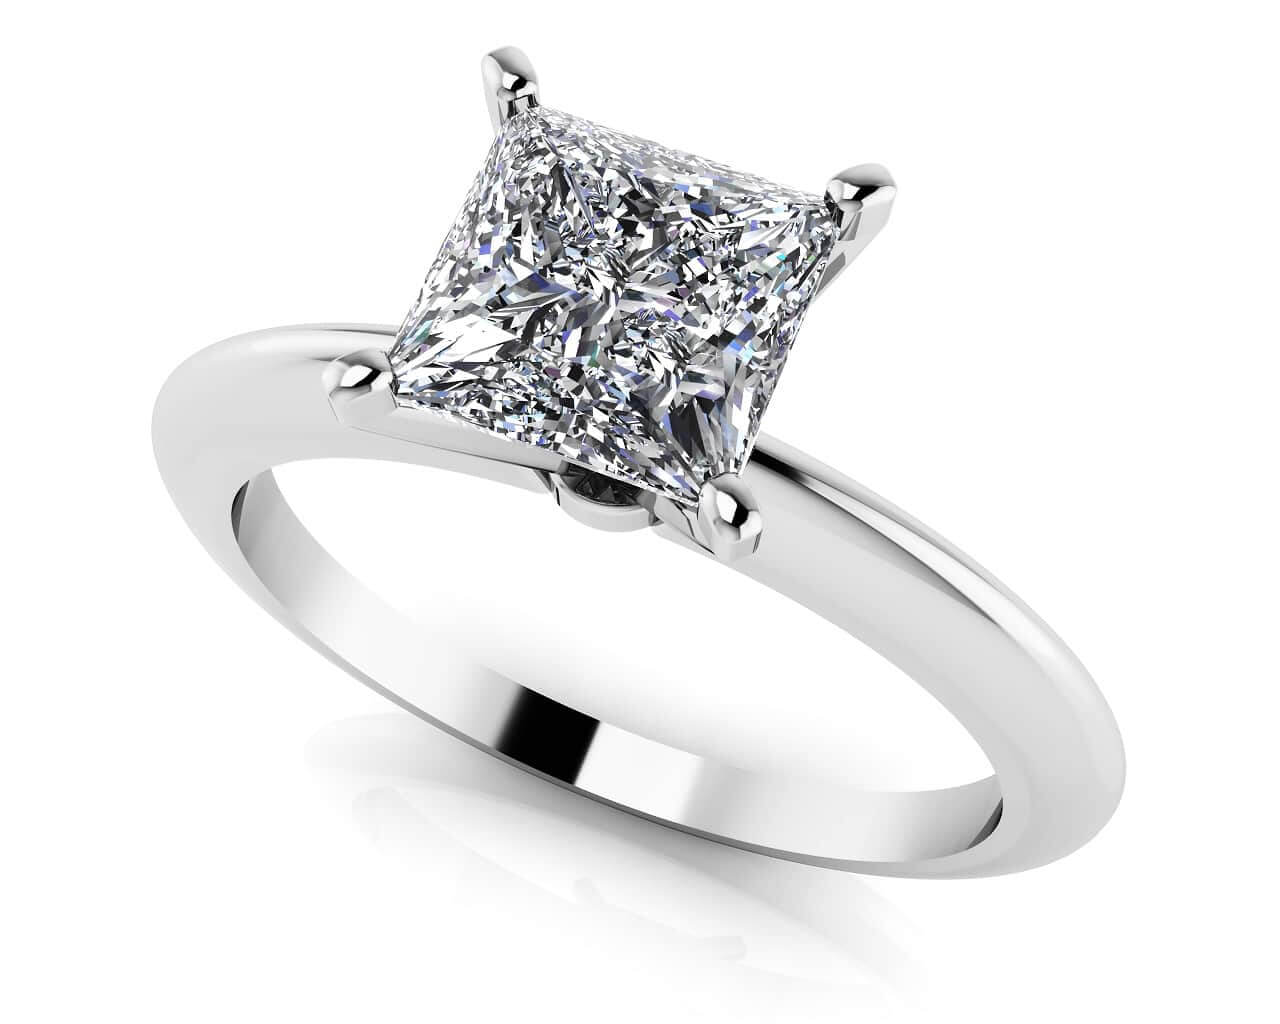 Customize And Buy Solitaire Diamond Engagement Rings